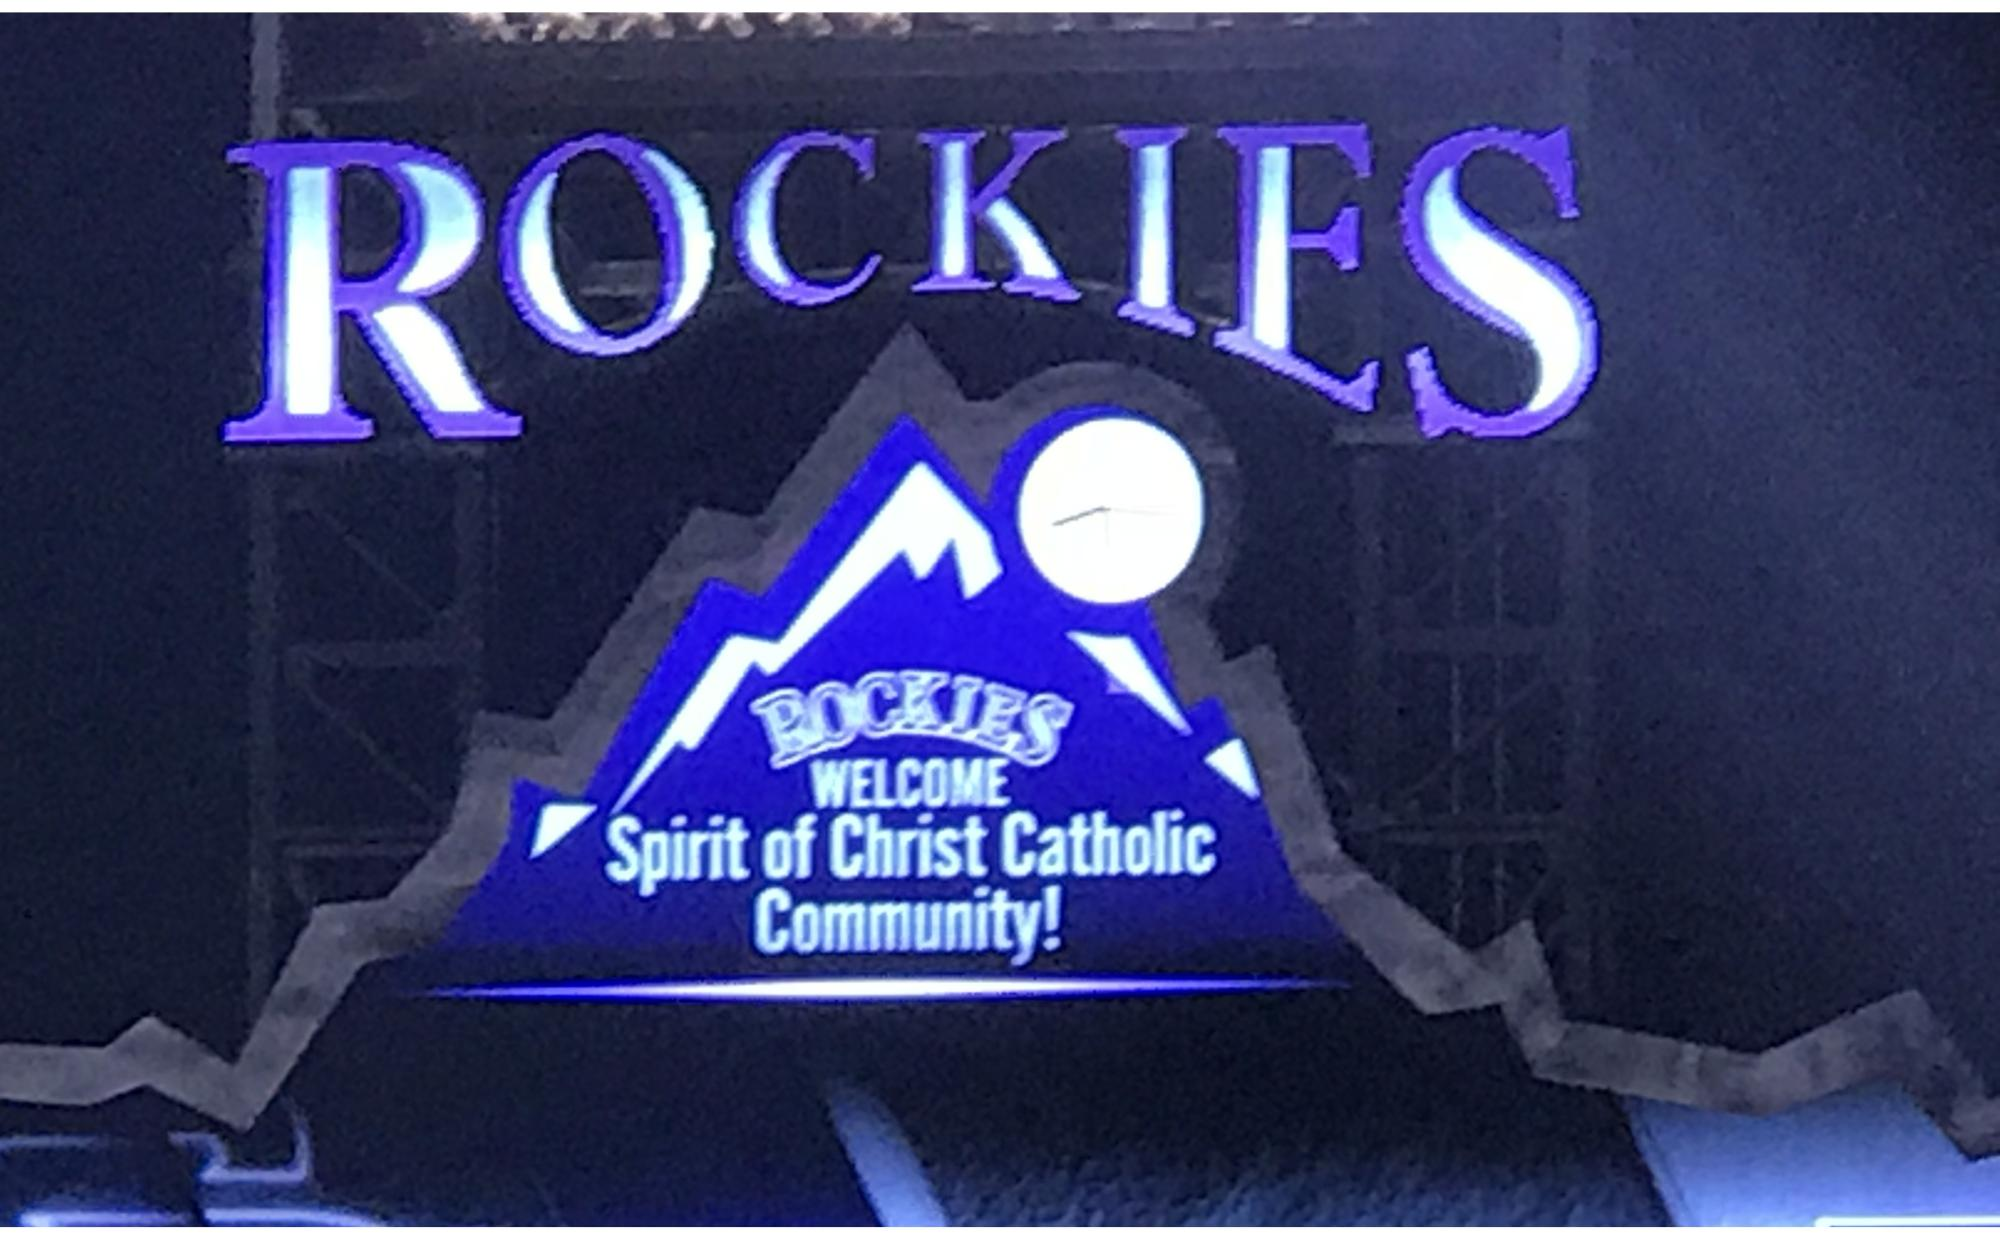 Rockies_SOC2.jpeg